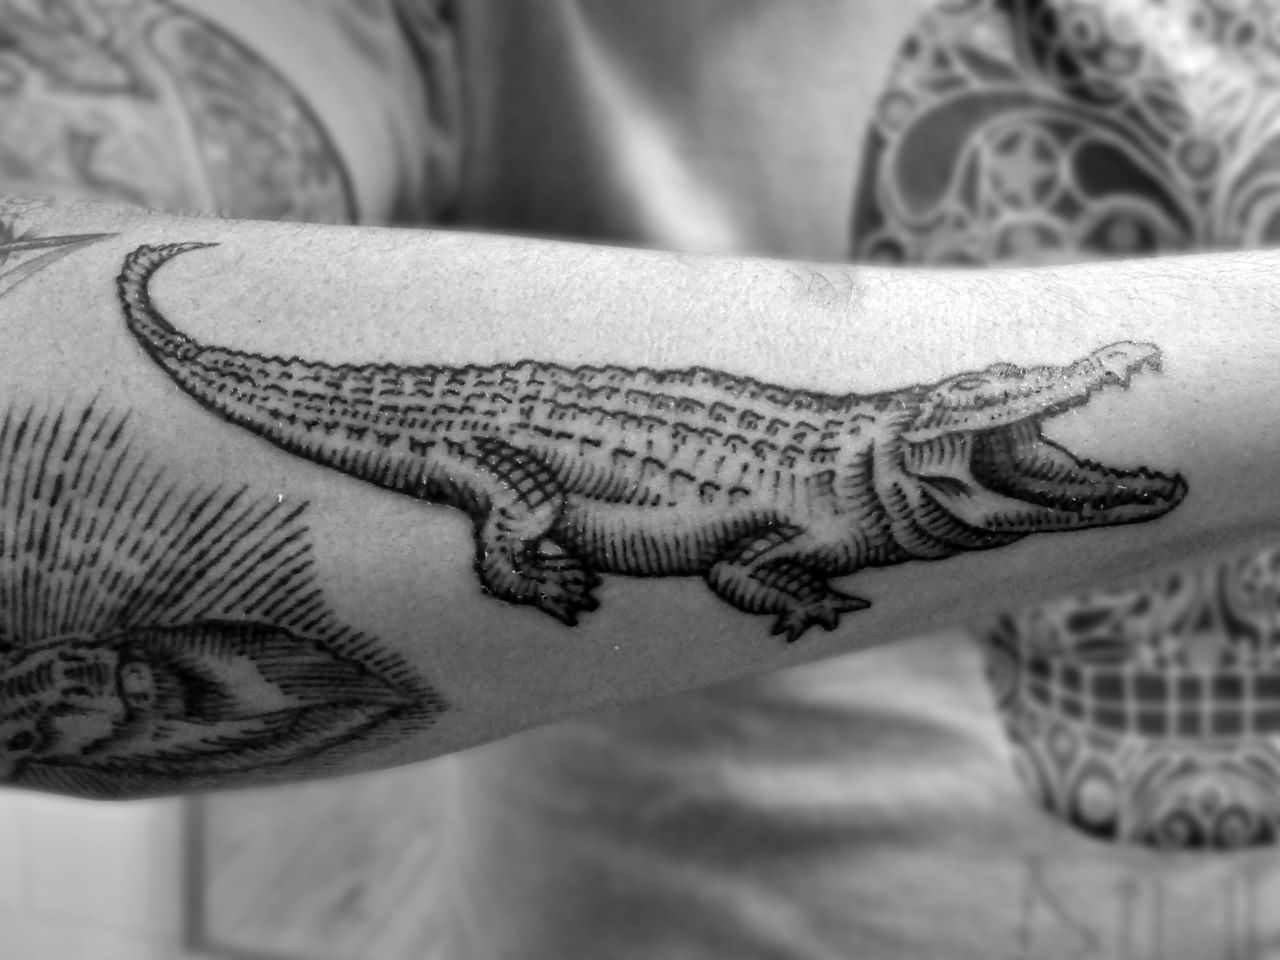 581a23e66 53+ Best Alligator Tattoos Design And Ideas